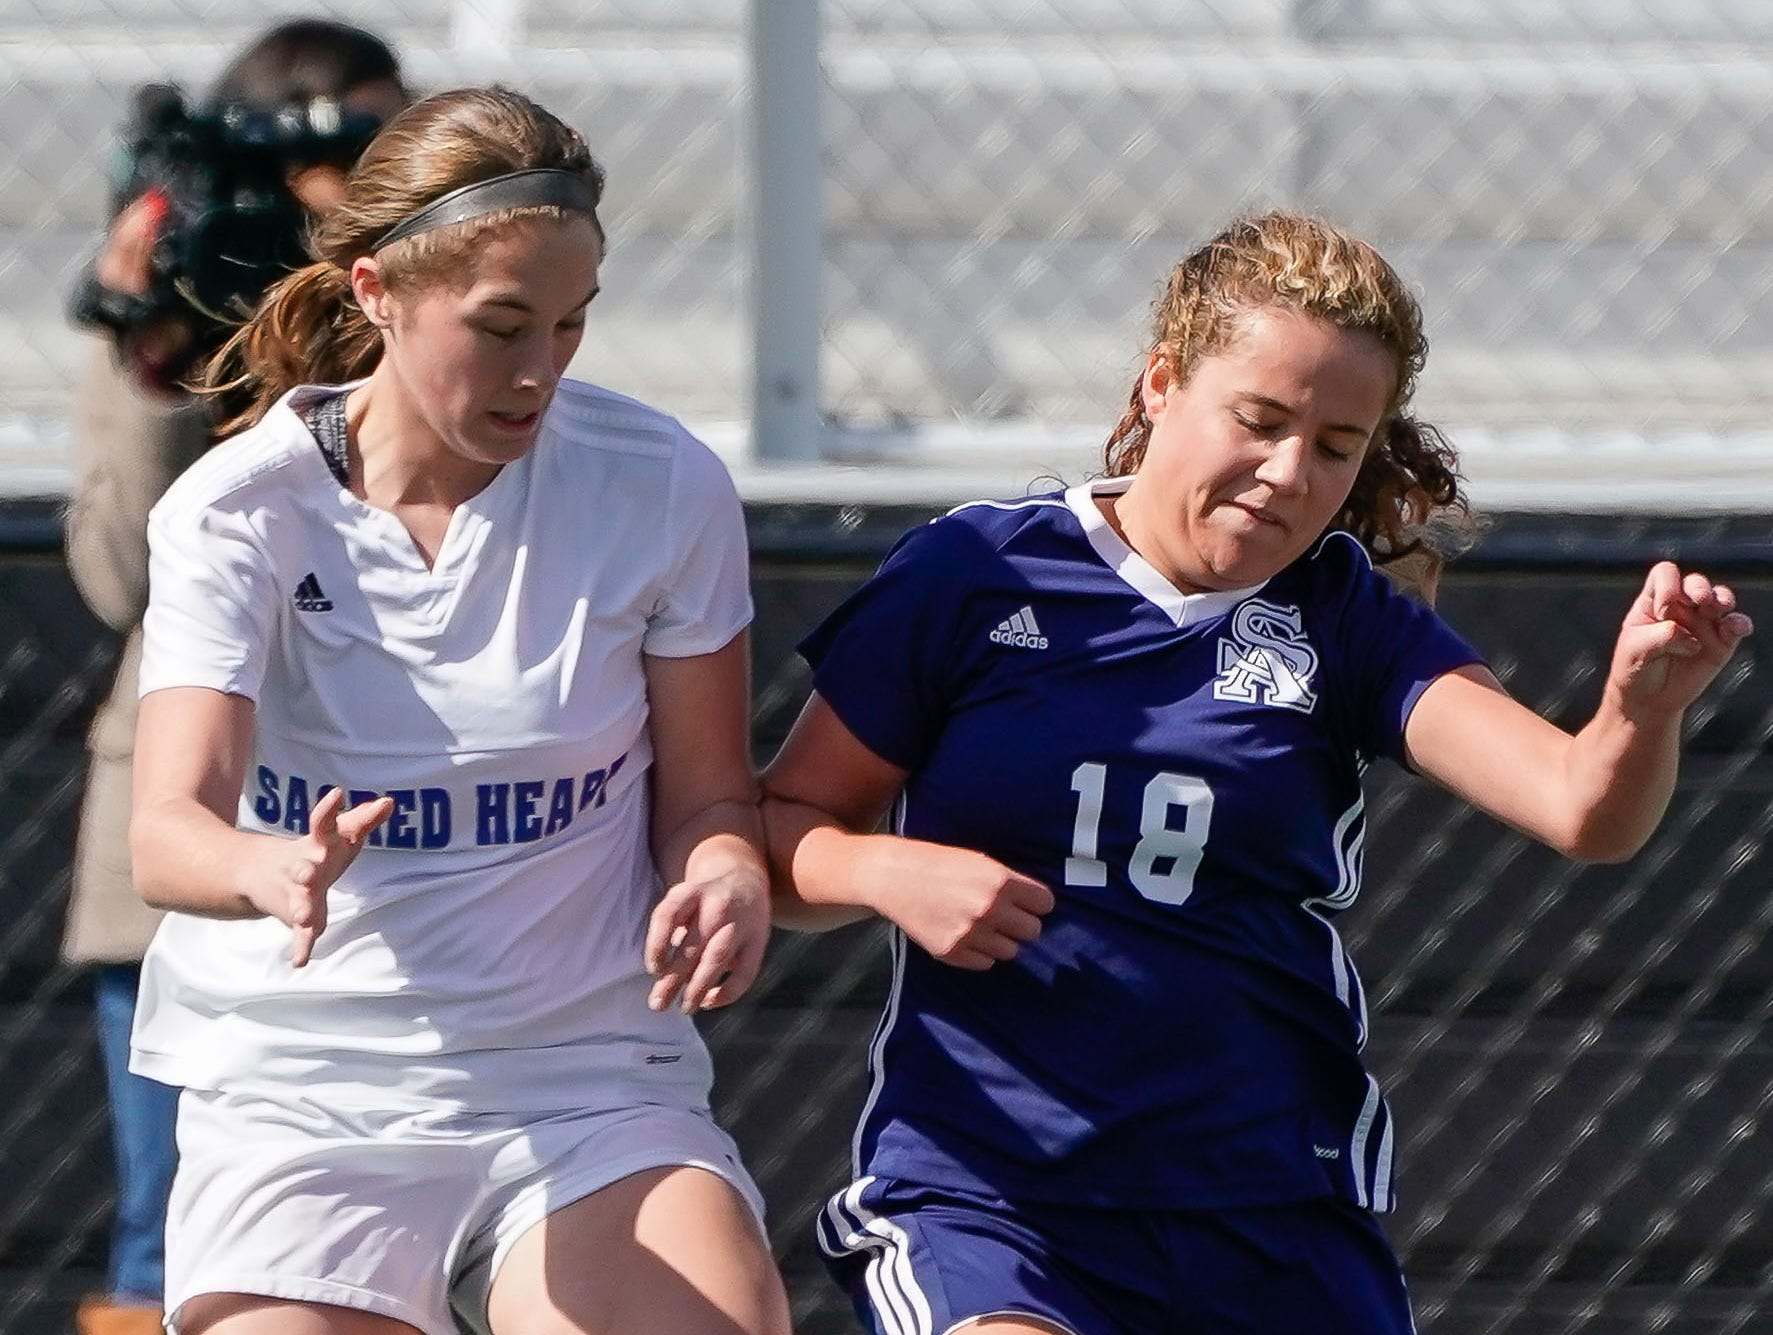 St. Andrew's Allison Santa Cruz (18) Sacred Heart's Blair Viator (20) battle for the ball during the MHSAA 1A,2A,3A  GIrls Soccer Championships held at Brandon High School in Brandon, MS, Saturday February 9, 2019.(Bob Smith-For The Clarion Ledger)